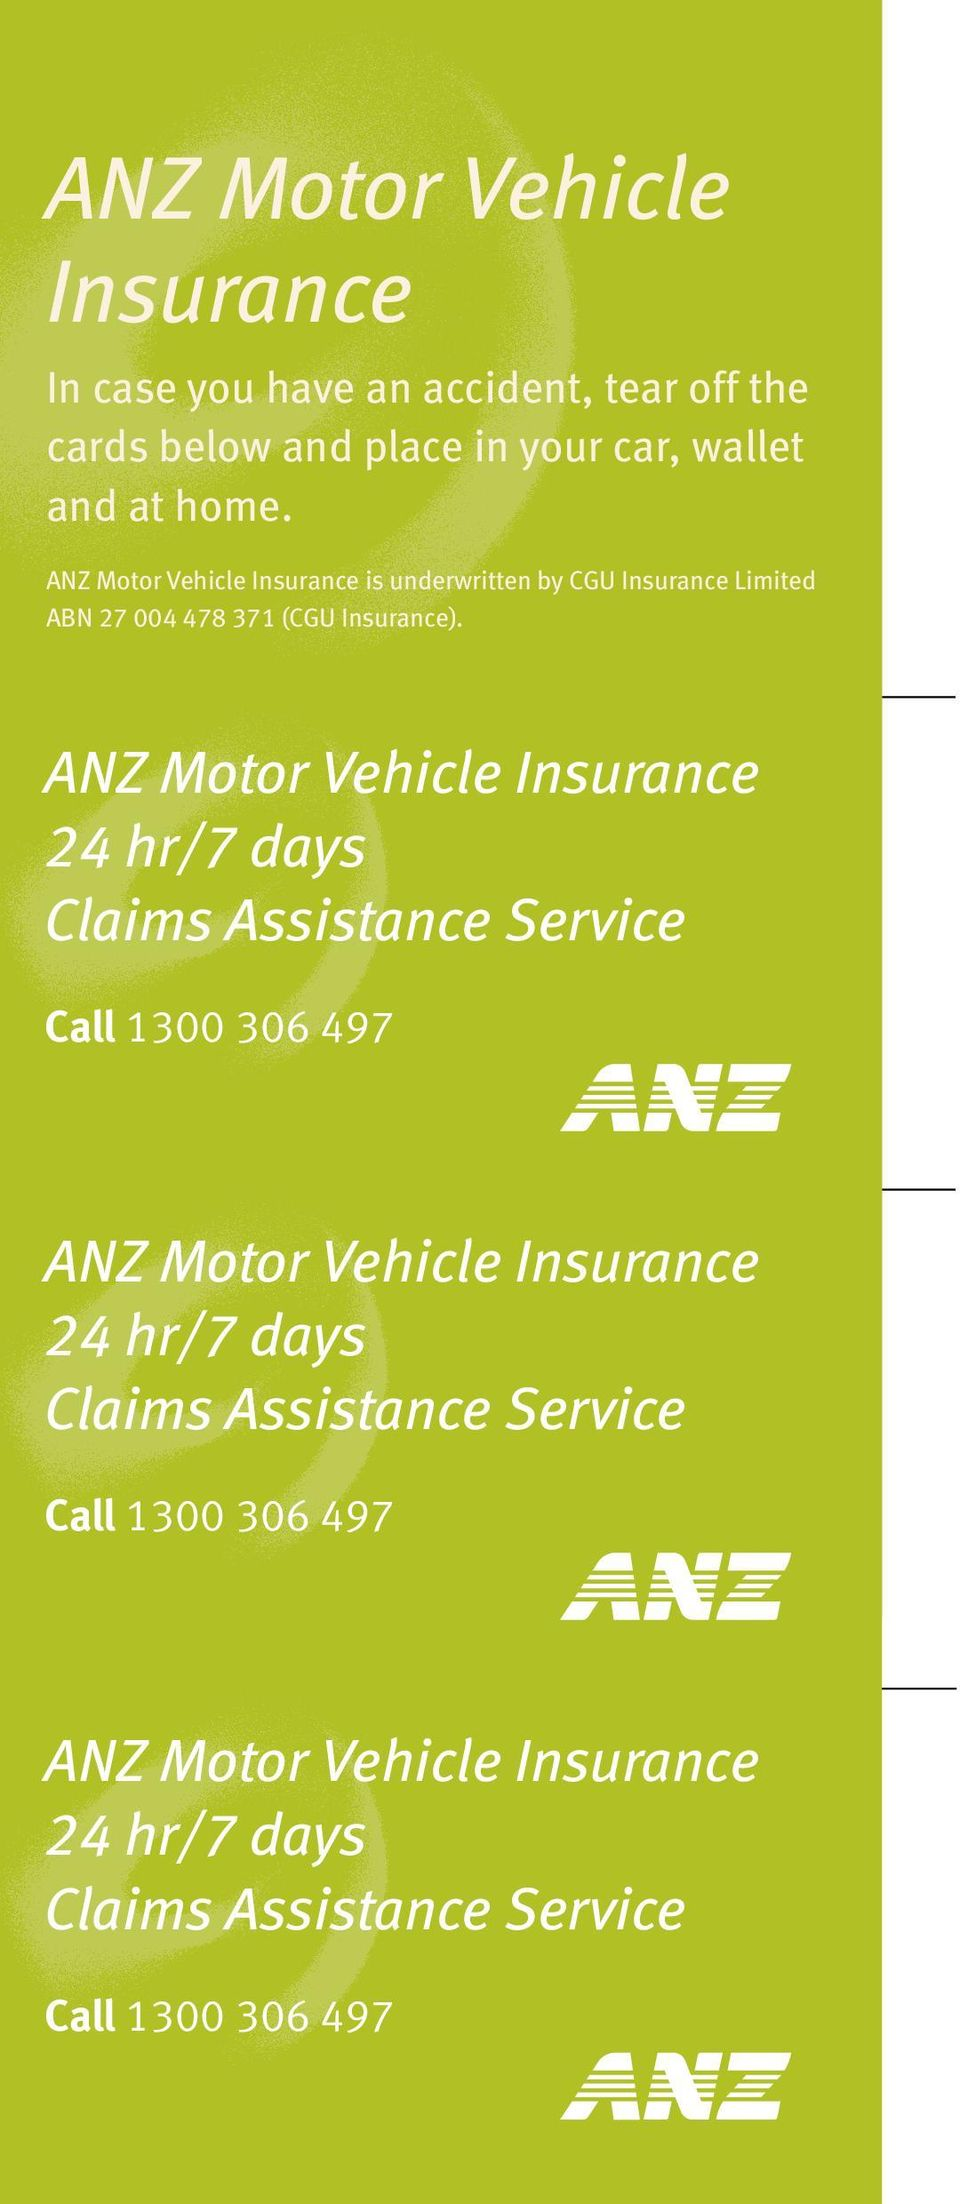 ANZ Motor Vehicle Insurance 24 hr/7 days Claims Assistance Service Call 1300 306 497 ANZ Motor Vehicle Insurance 24 hr/7